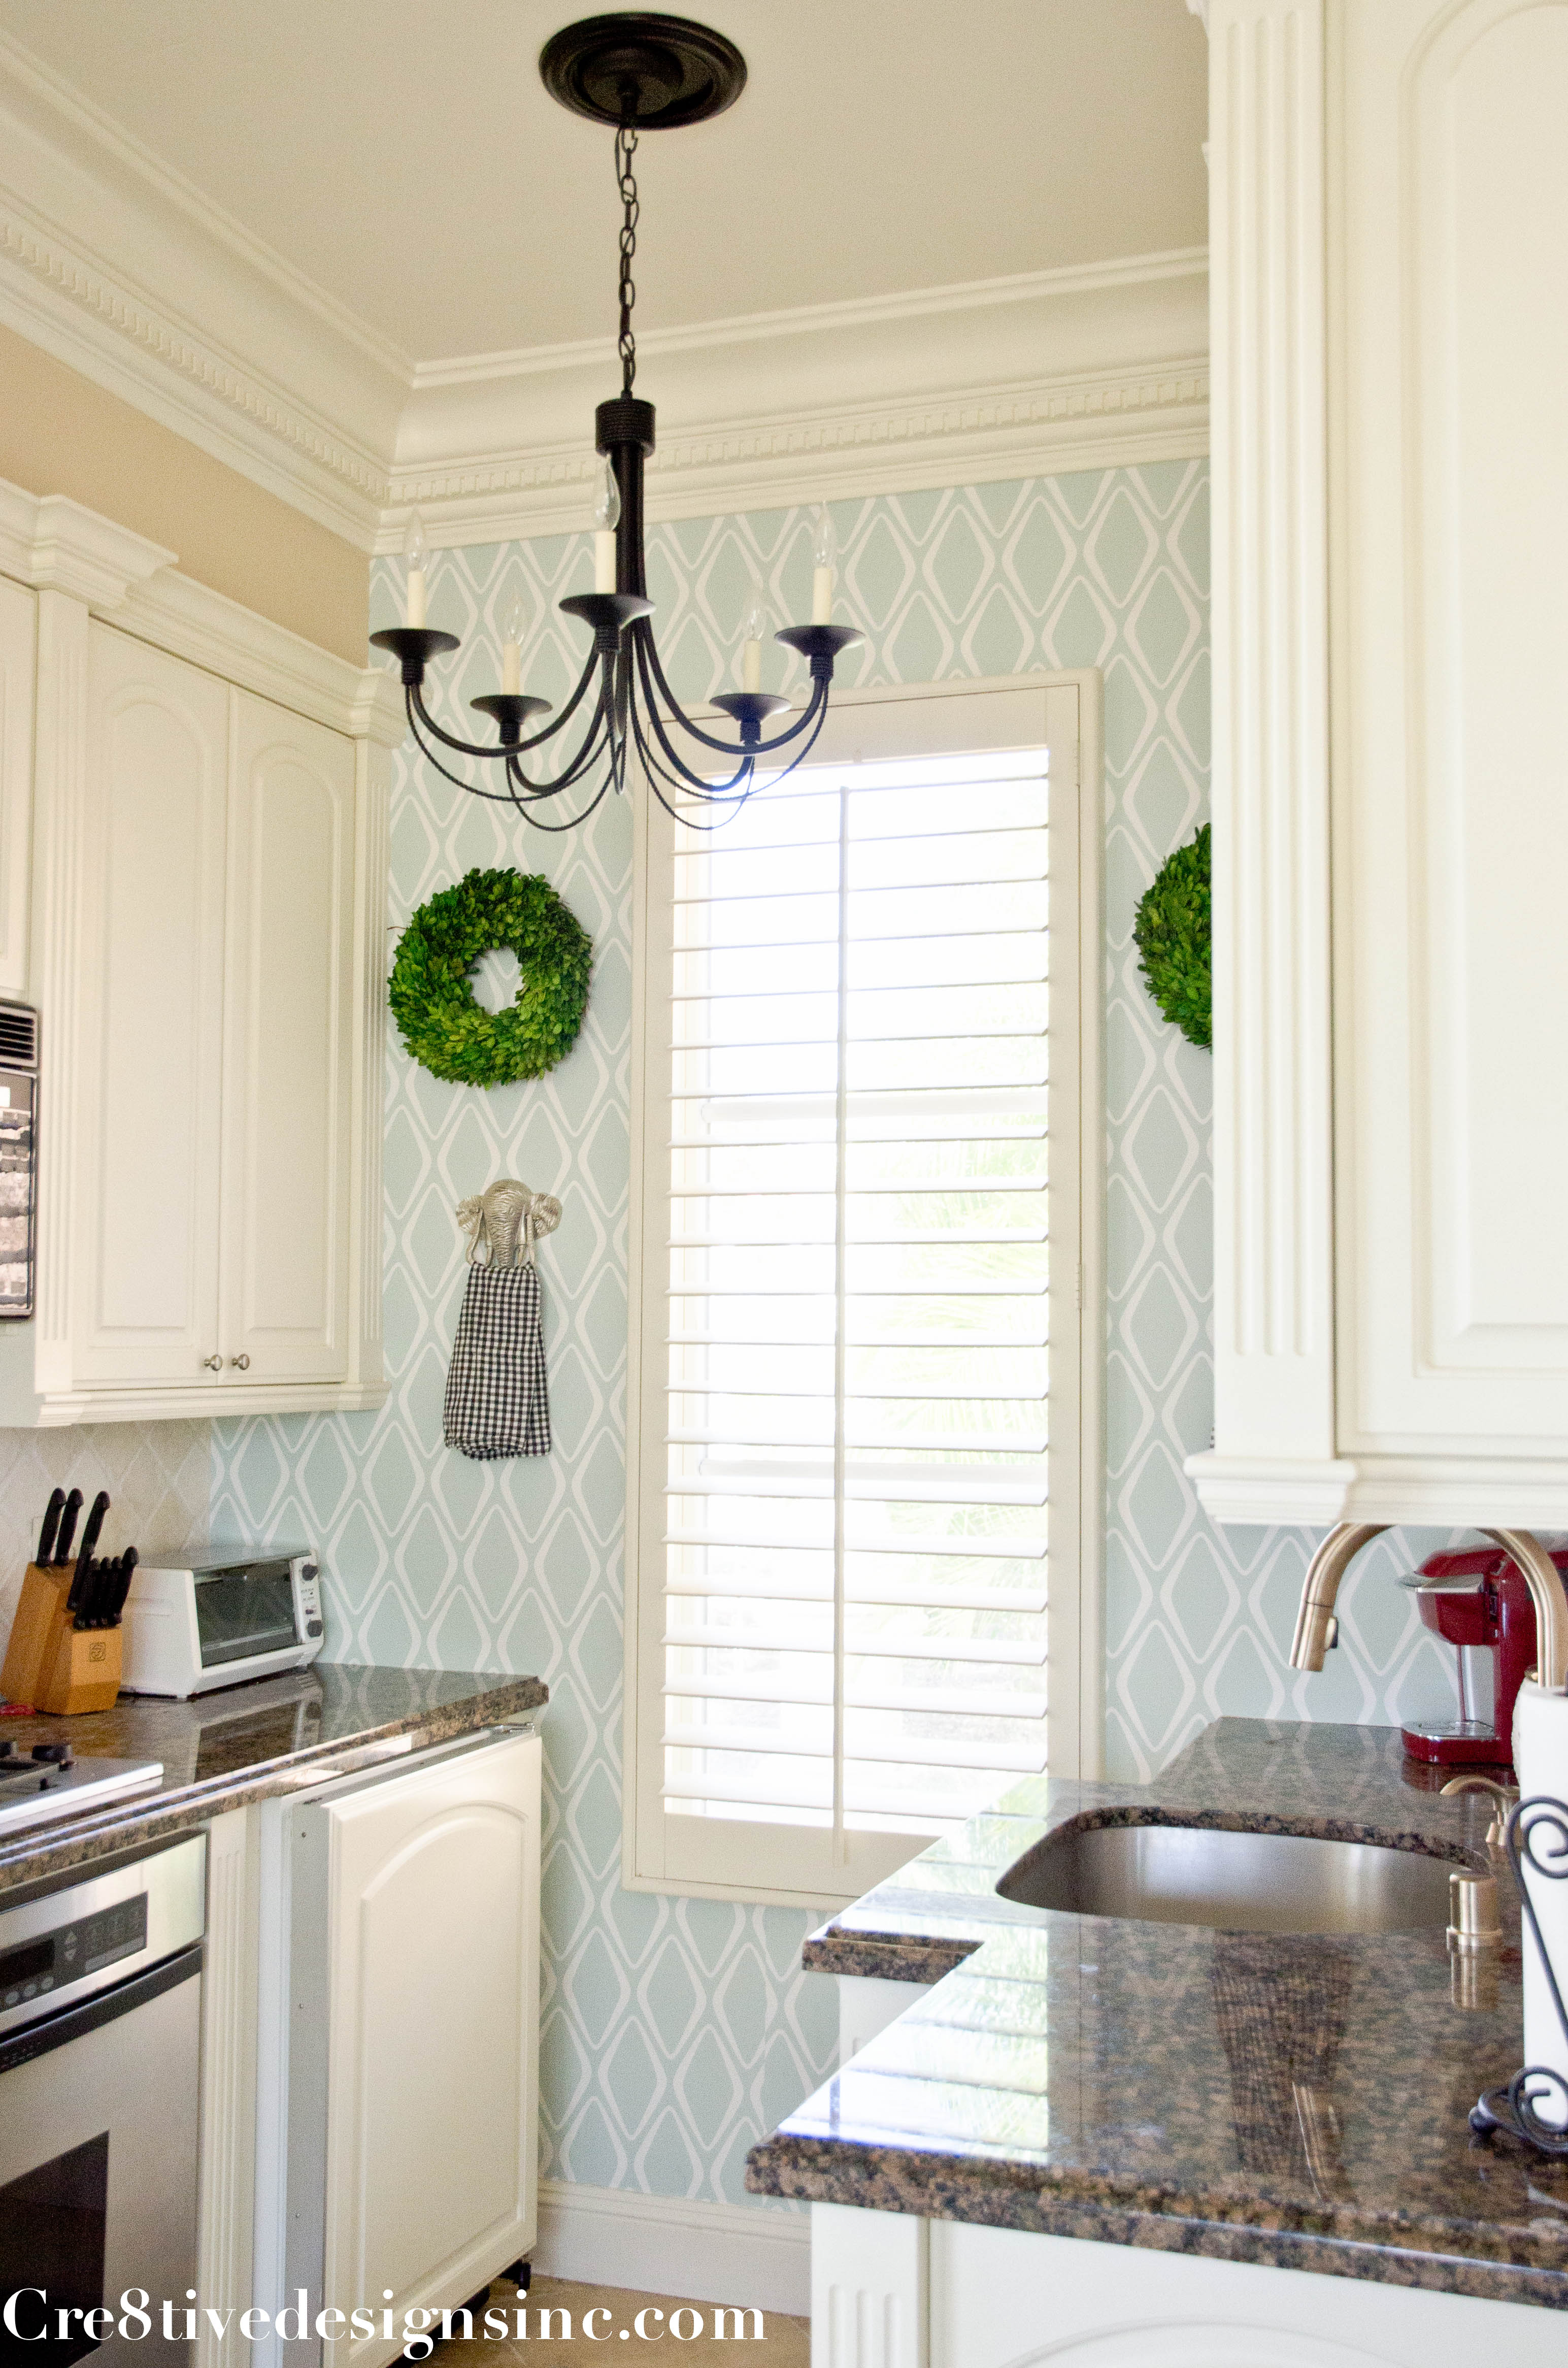 Download Removable Wallpaper For Kitchen Cabinets Gallery